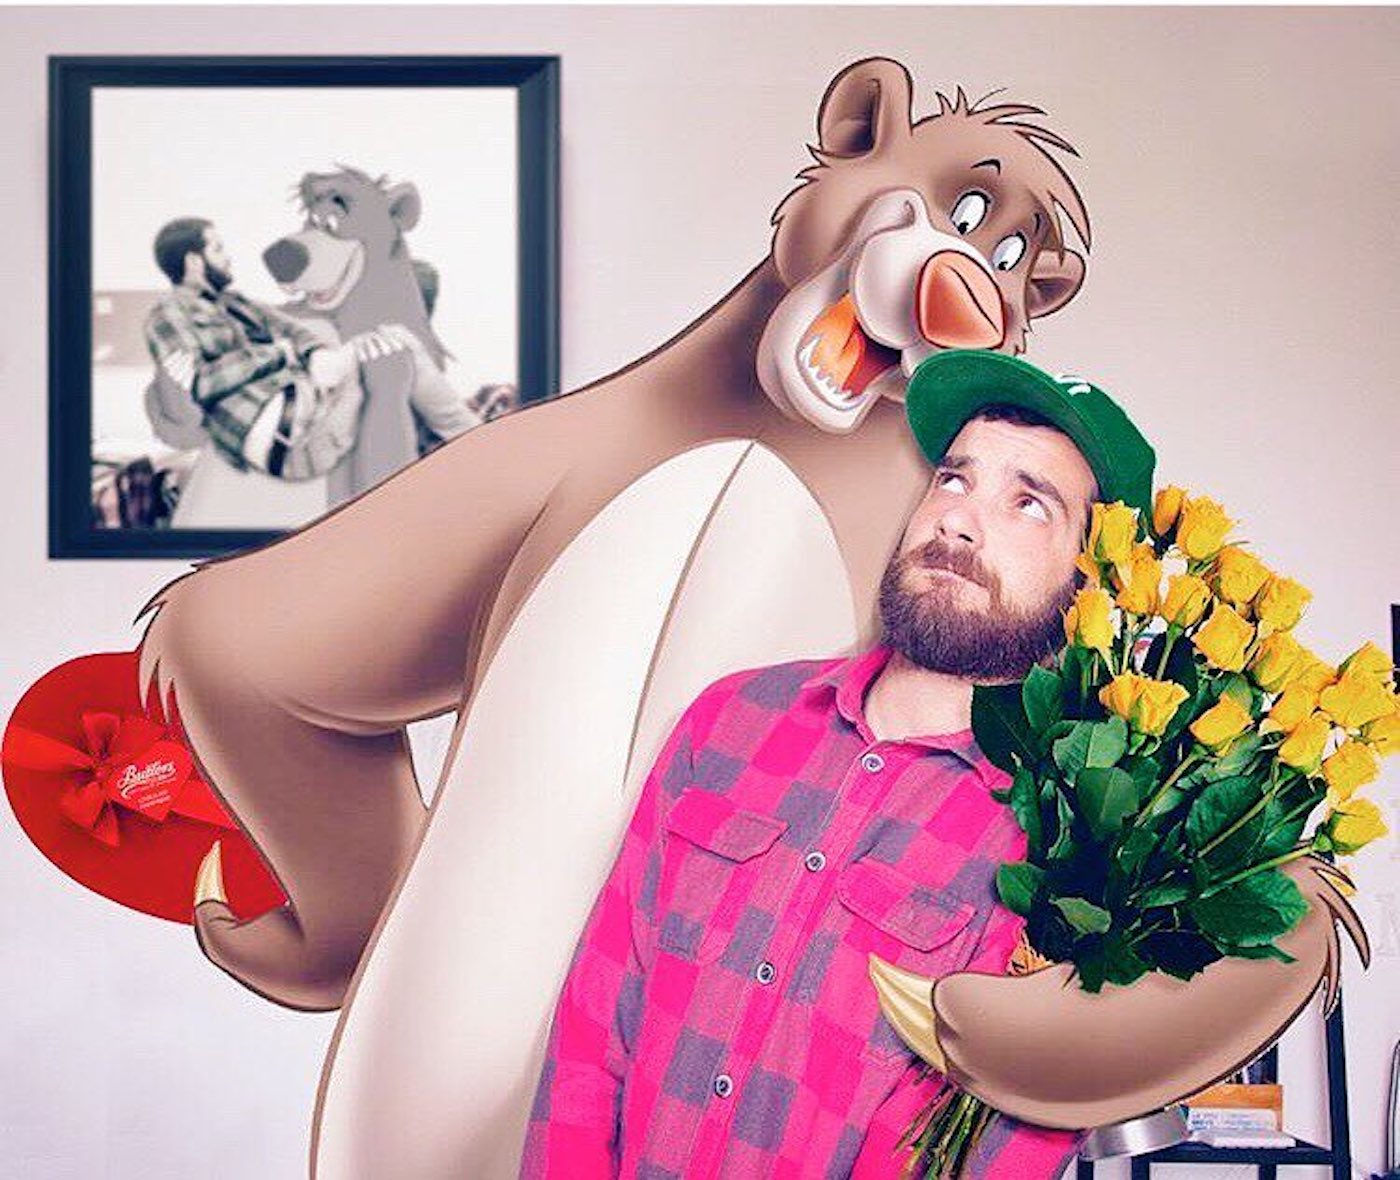 Disney Characters in Real Pictures By Luigi Kemo Volo